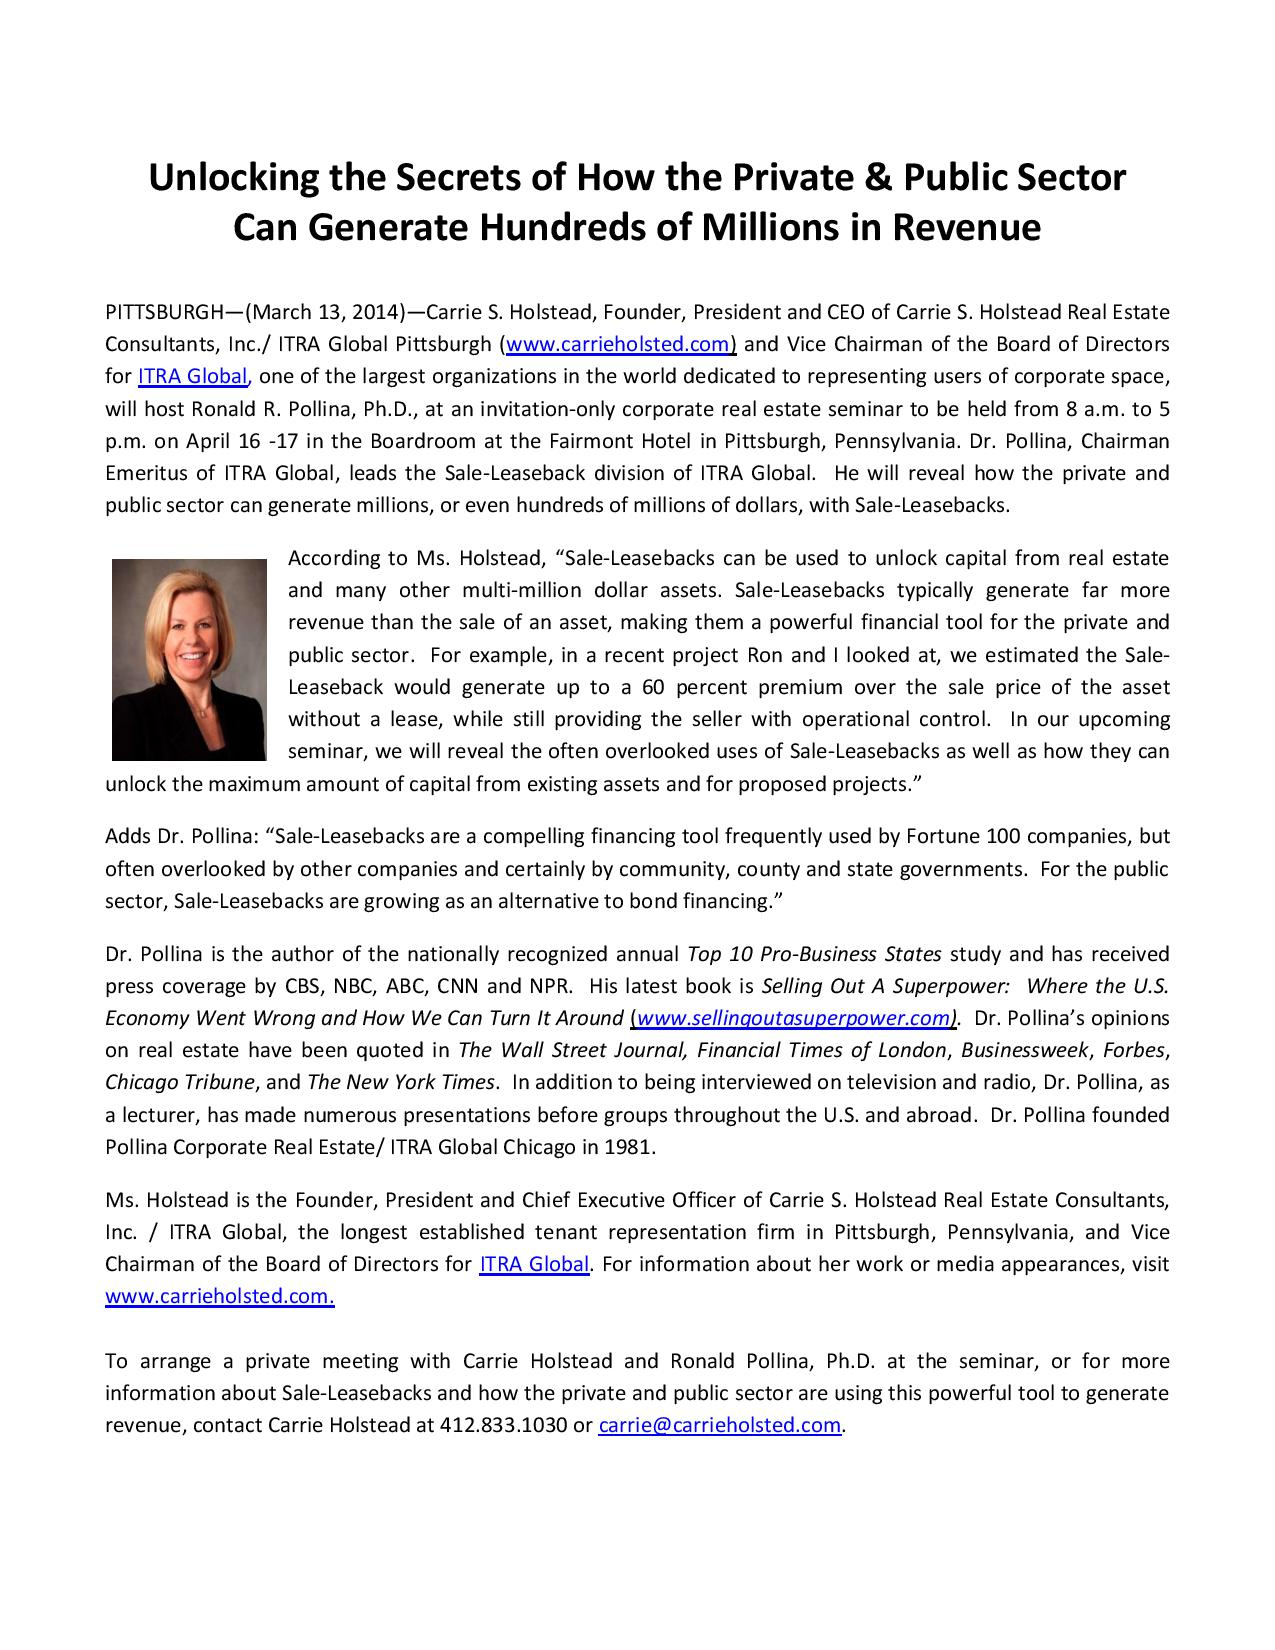 Press Release - How The Private & Public Sector Can Generate ...